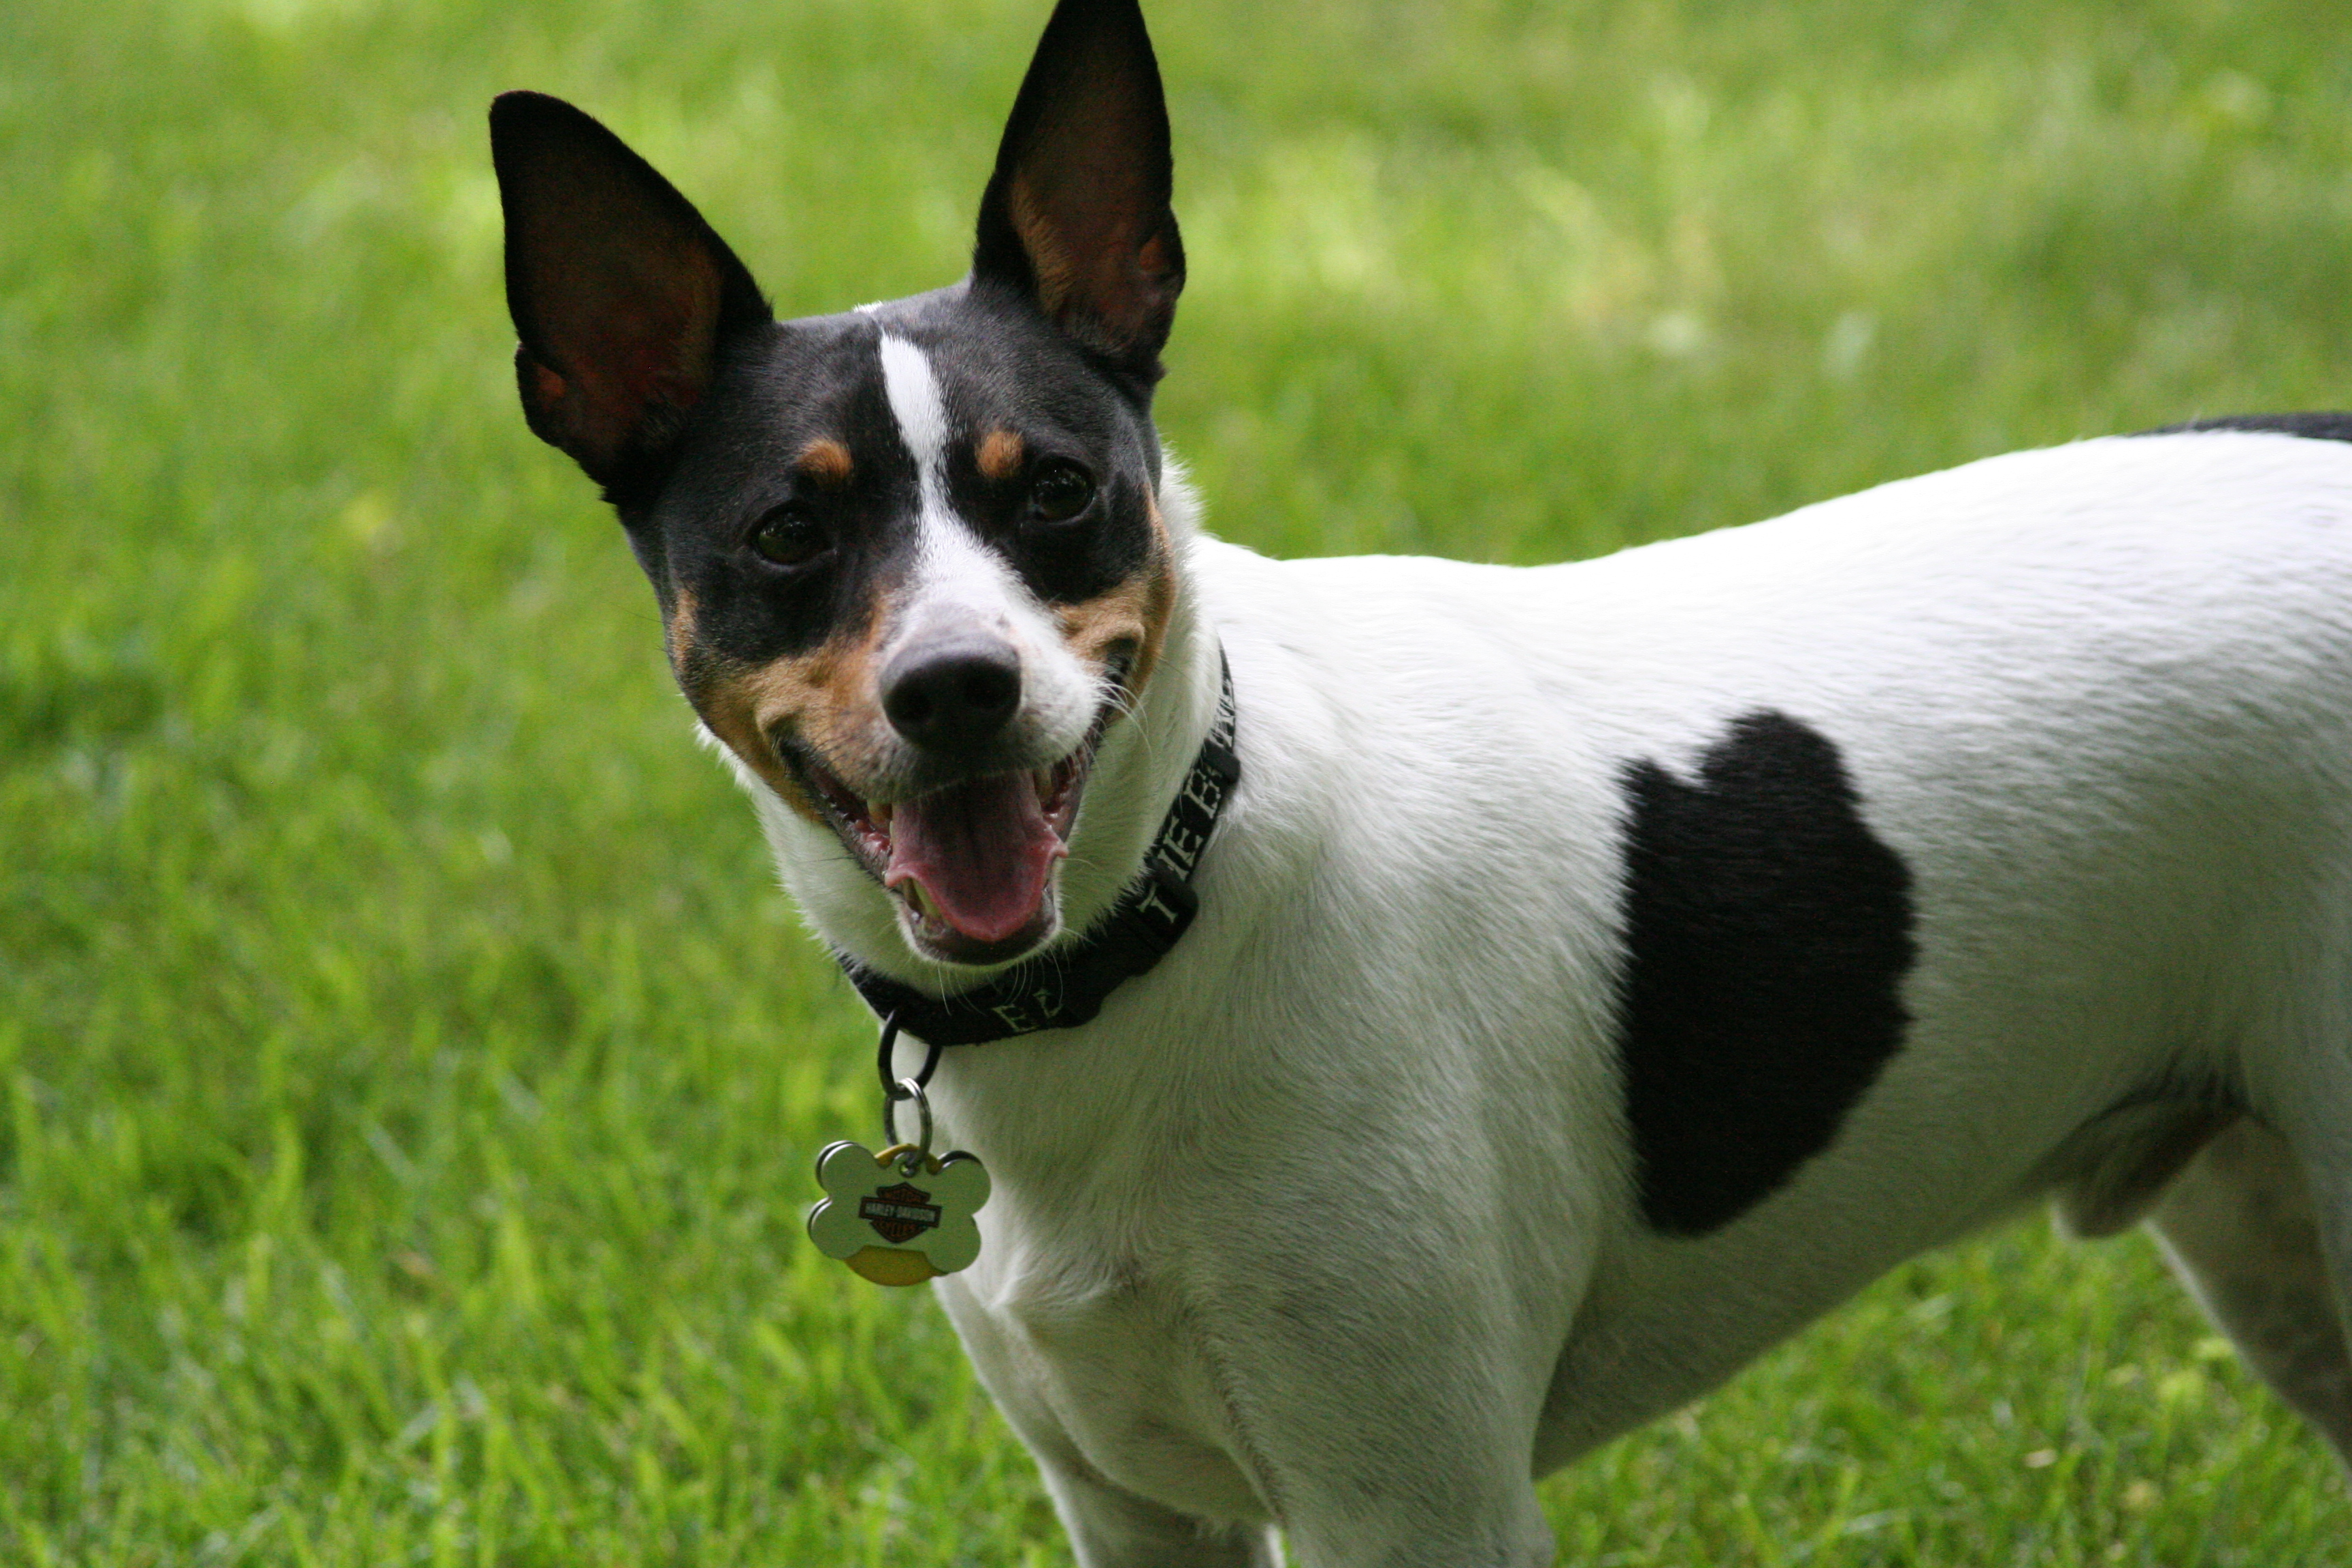 Decker Rat Terrier Dog: Decker Decker Rat Terrier About The Breed